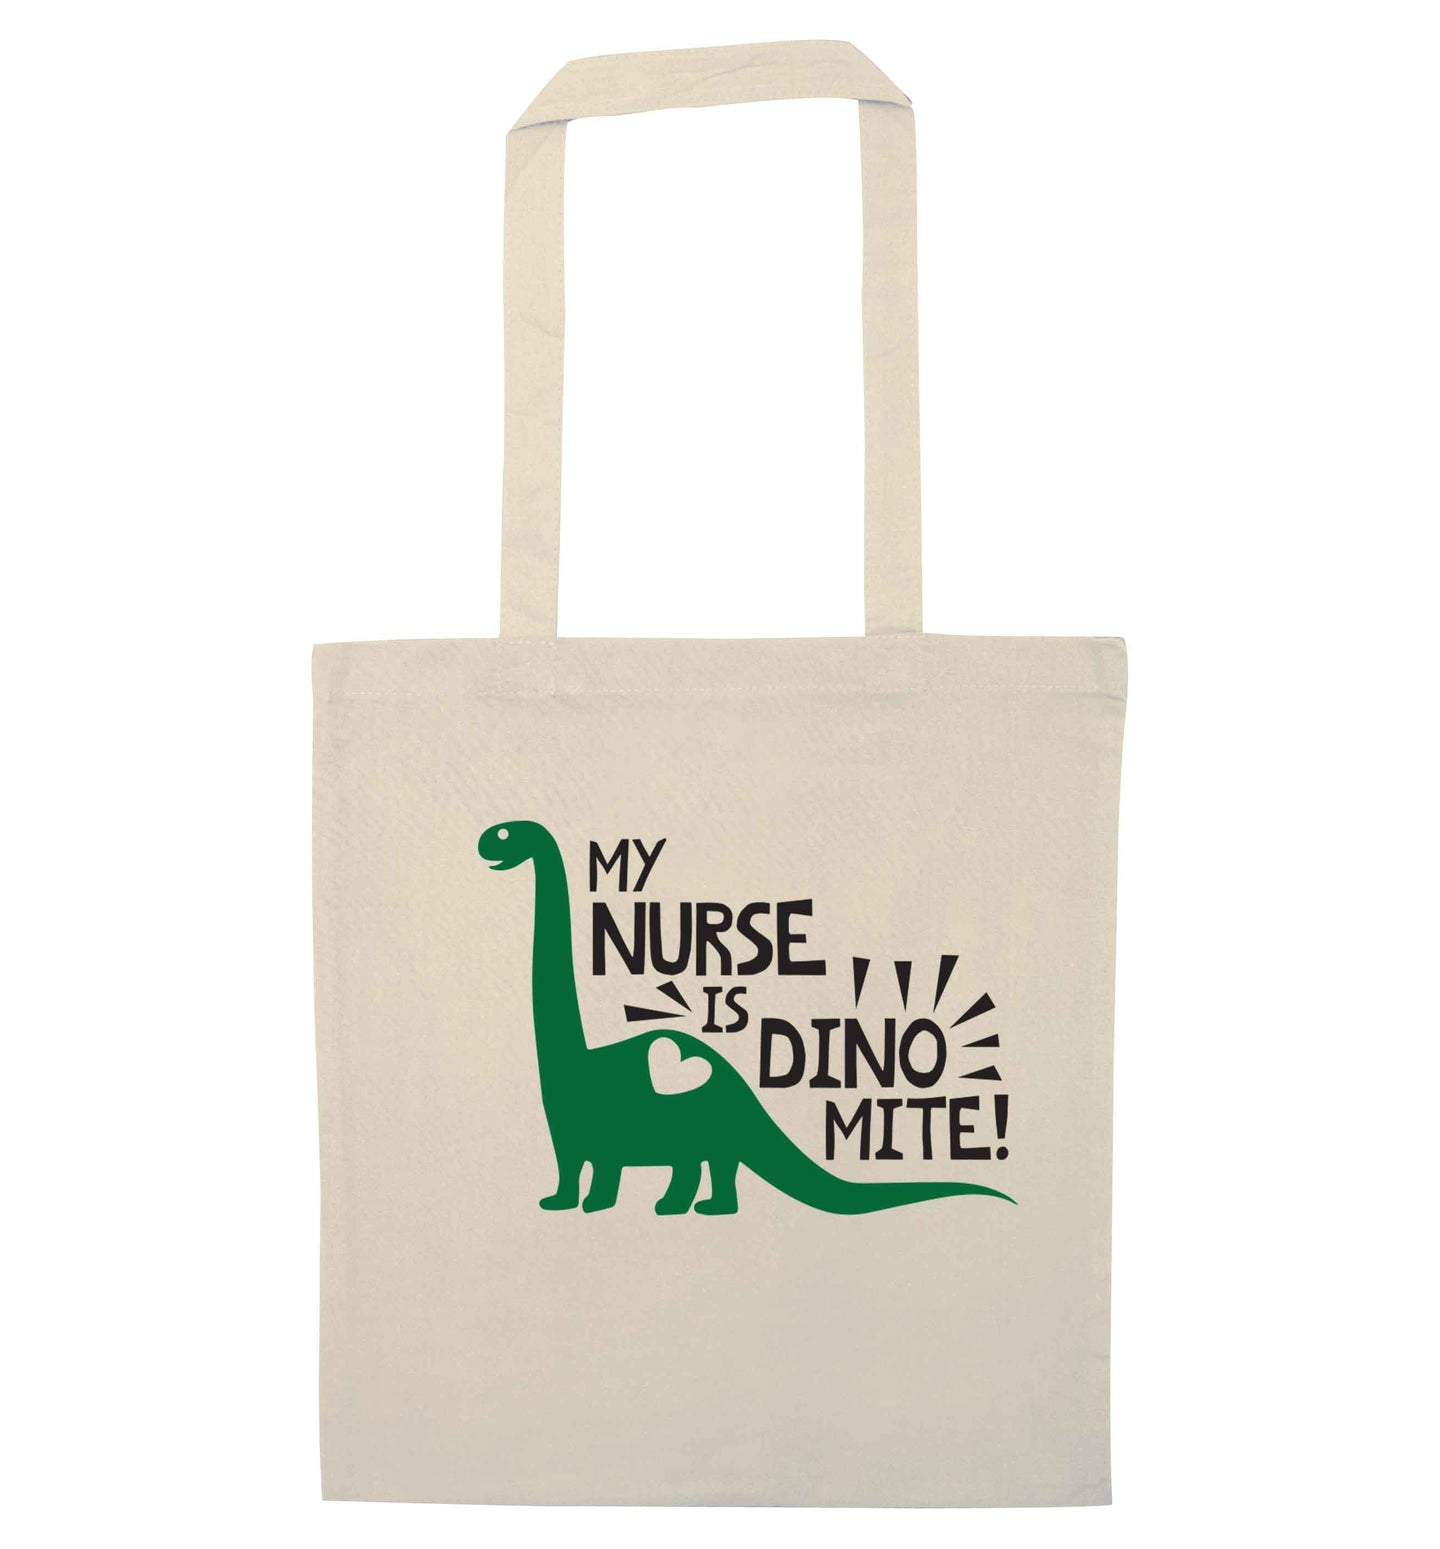 My nurse is dinomite! natural tote bag